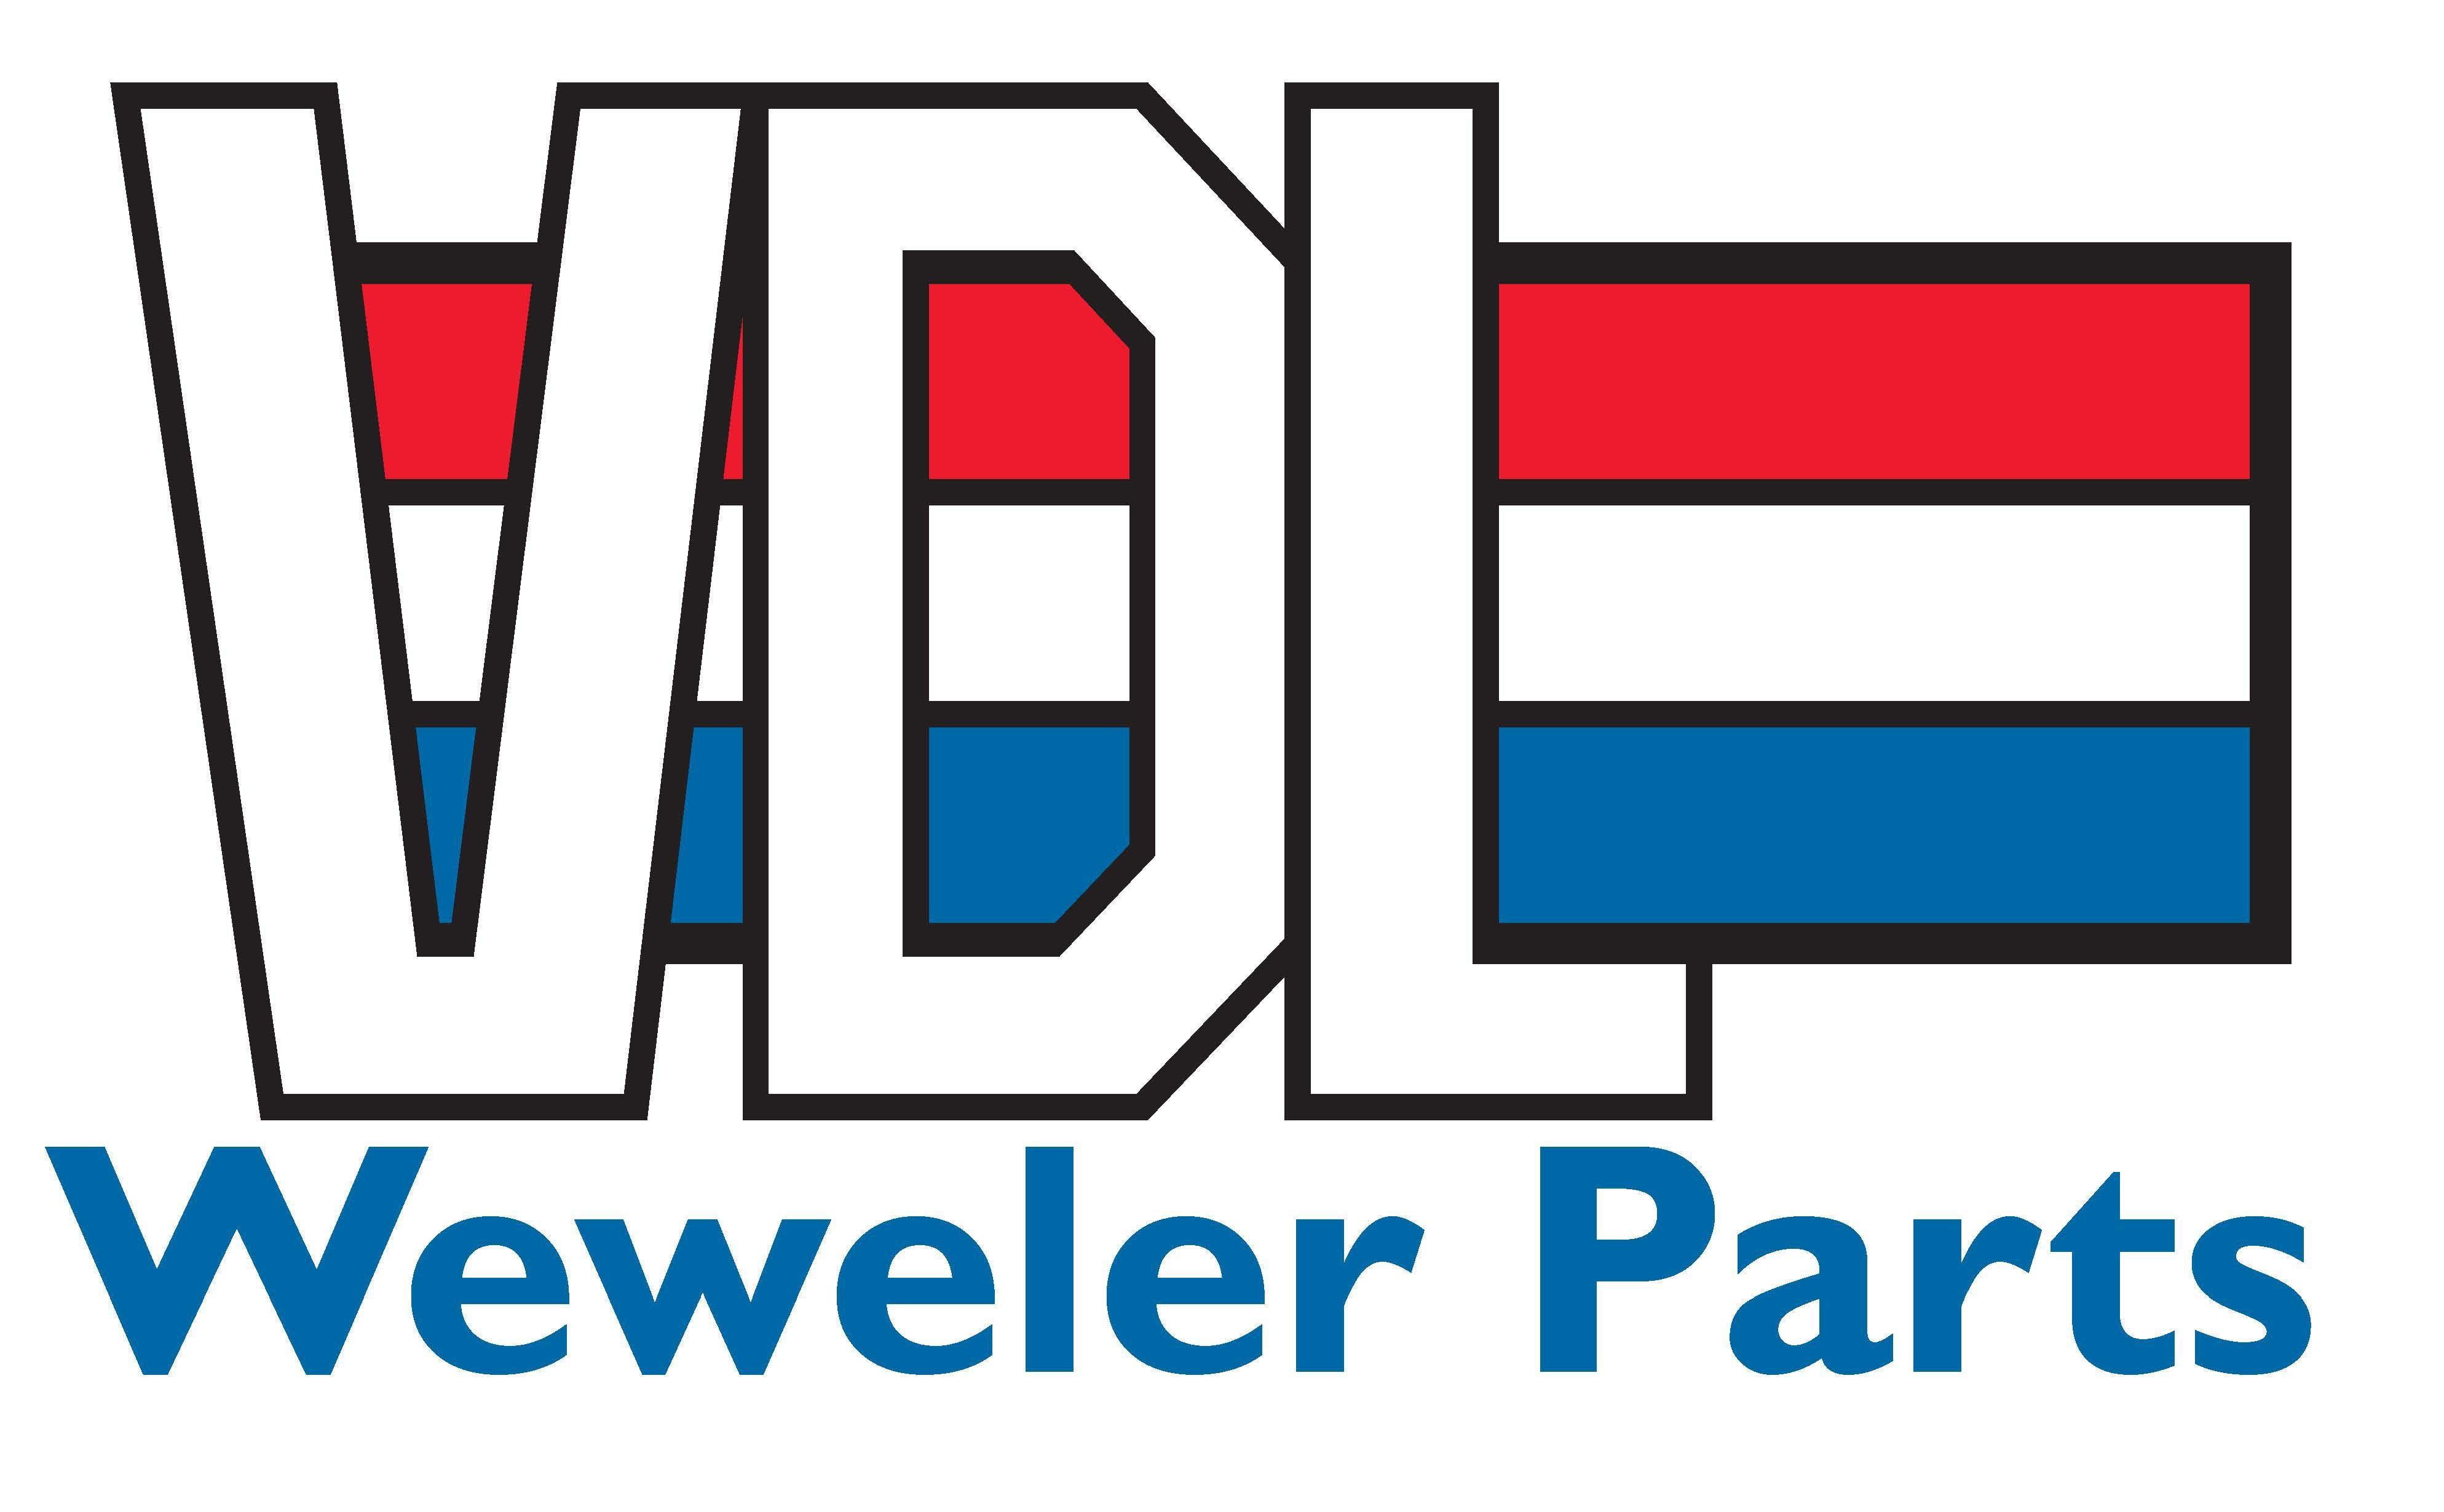 http://www.vdlwewelerparts.nl